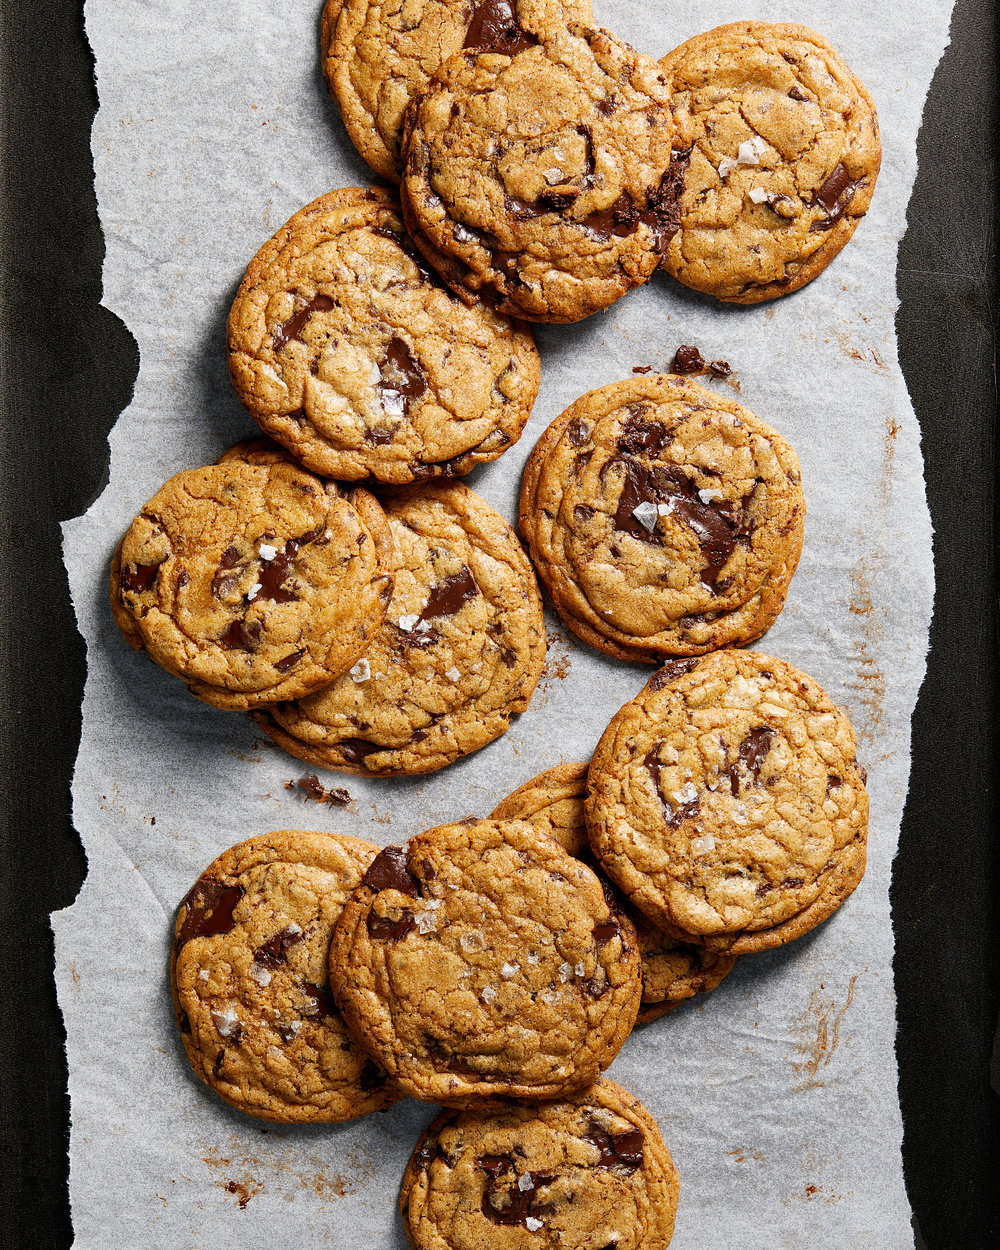 RIPPLE CHOCOLATE CHIP COOKIES